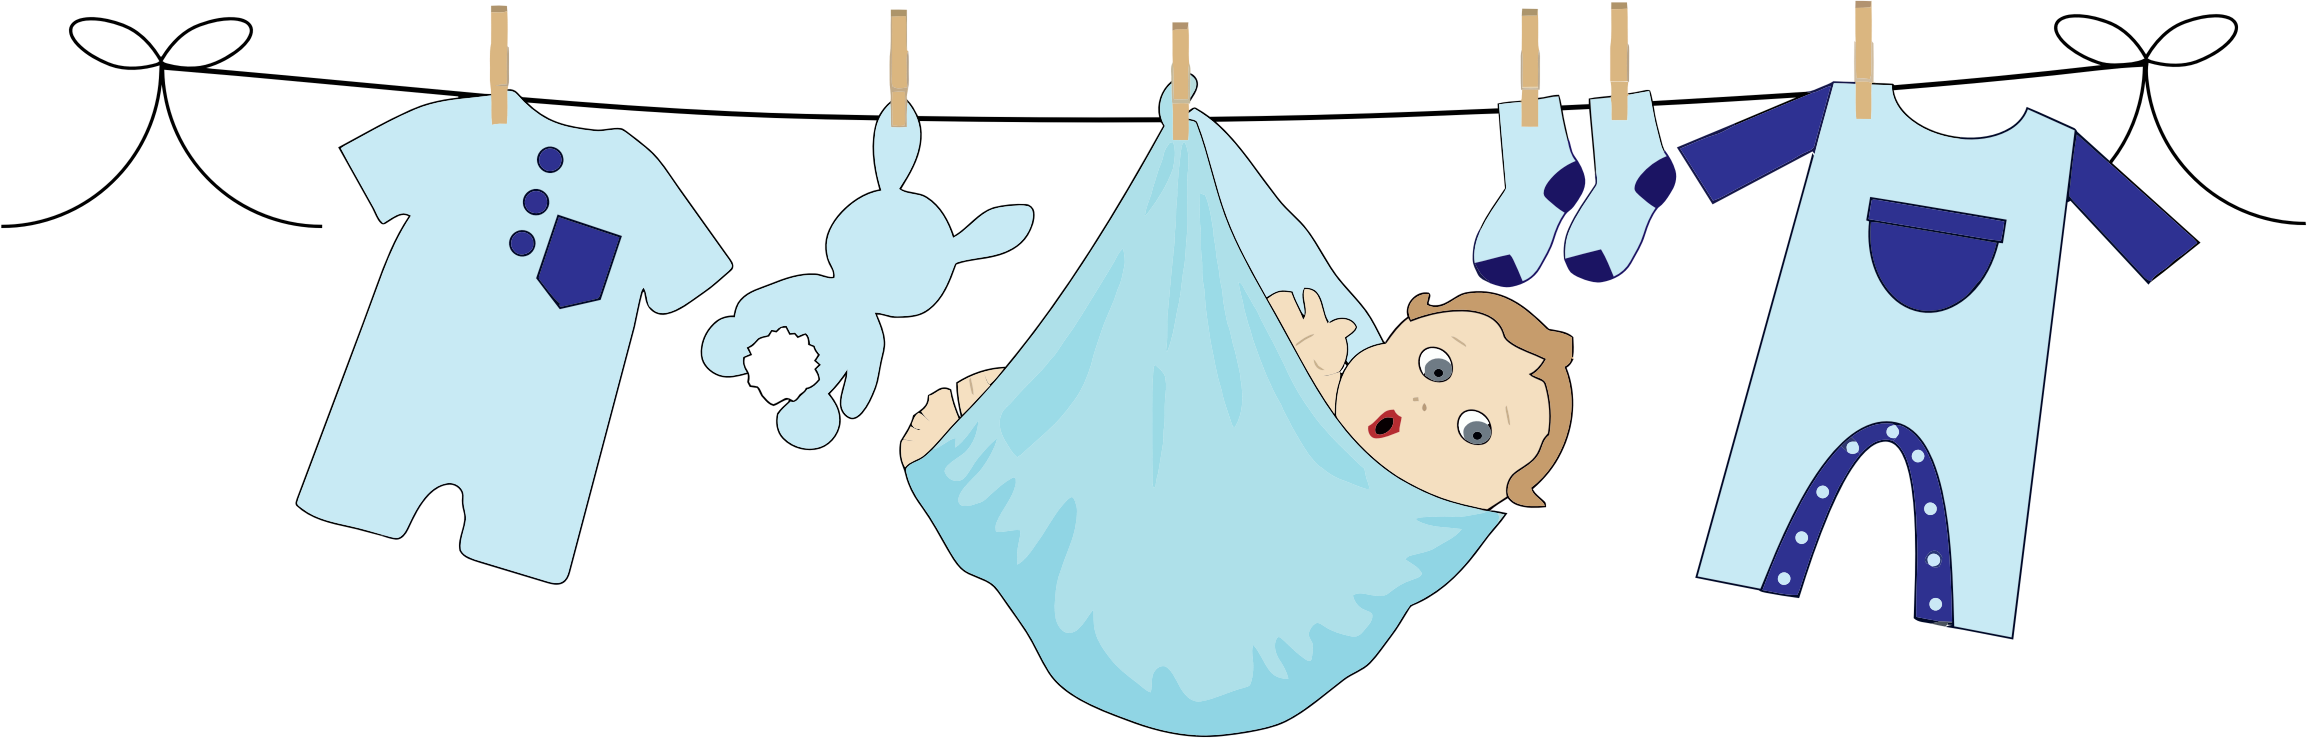 Baby Boy Clipart Png Jpg Free #46749.